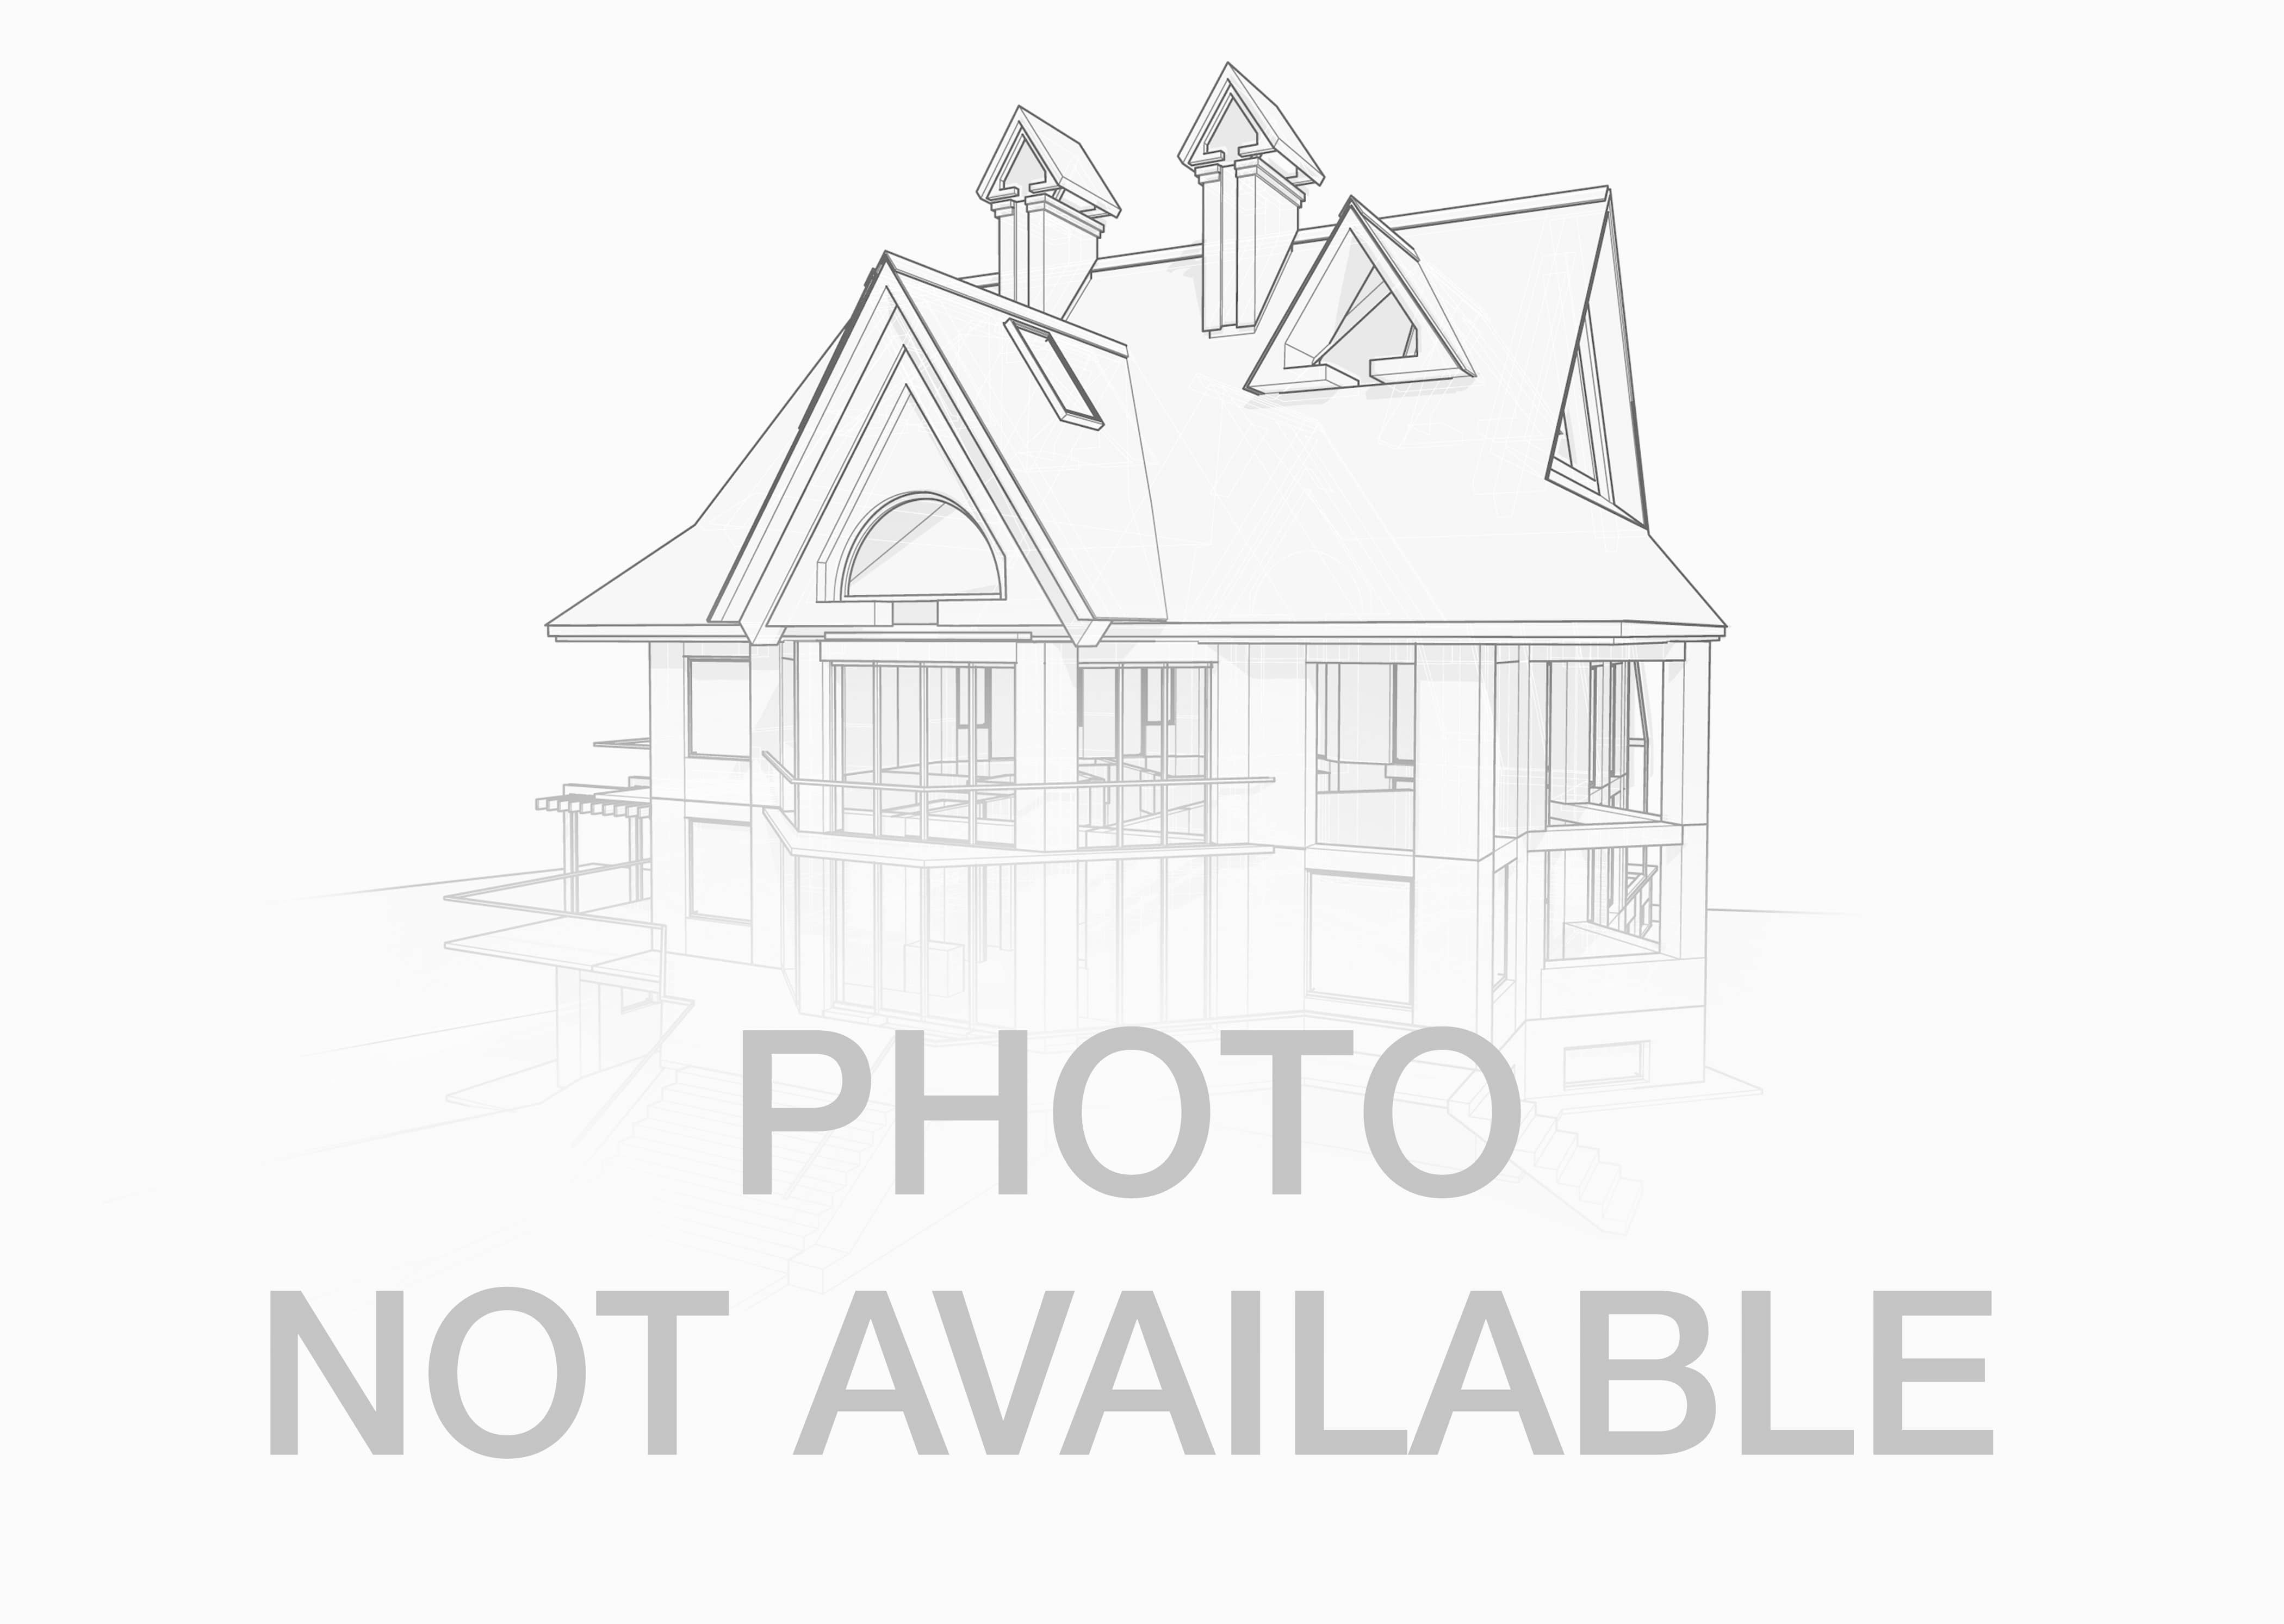 & Victoria Abbey PA Homes for Sale and Real Estate